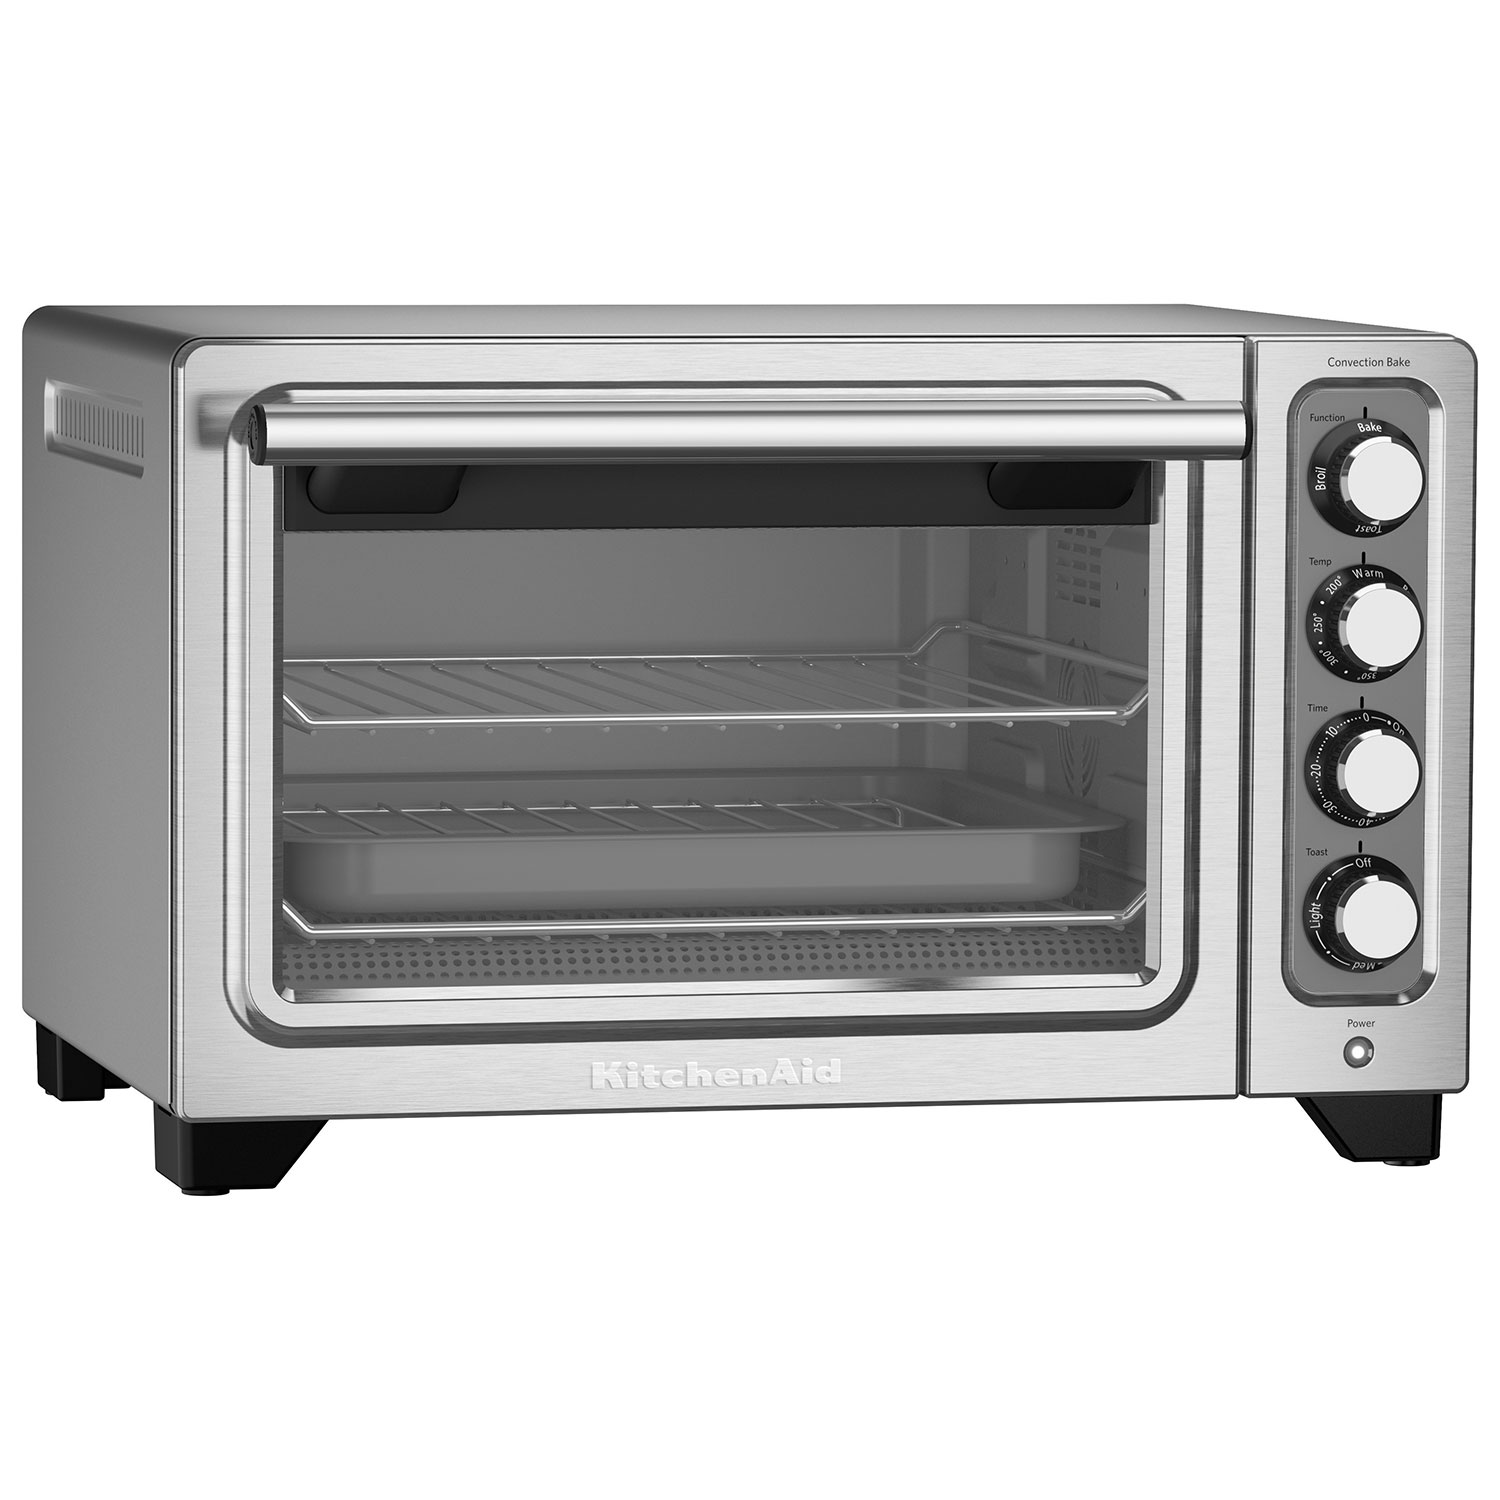 oven digital convection p prod hei kenmore qlt toaster wid sale elite for countertop spin